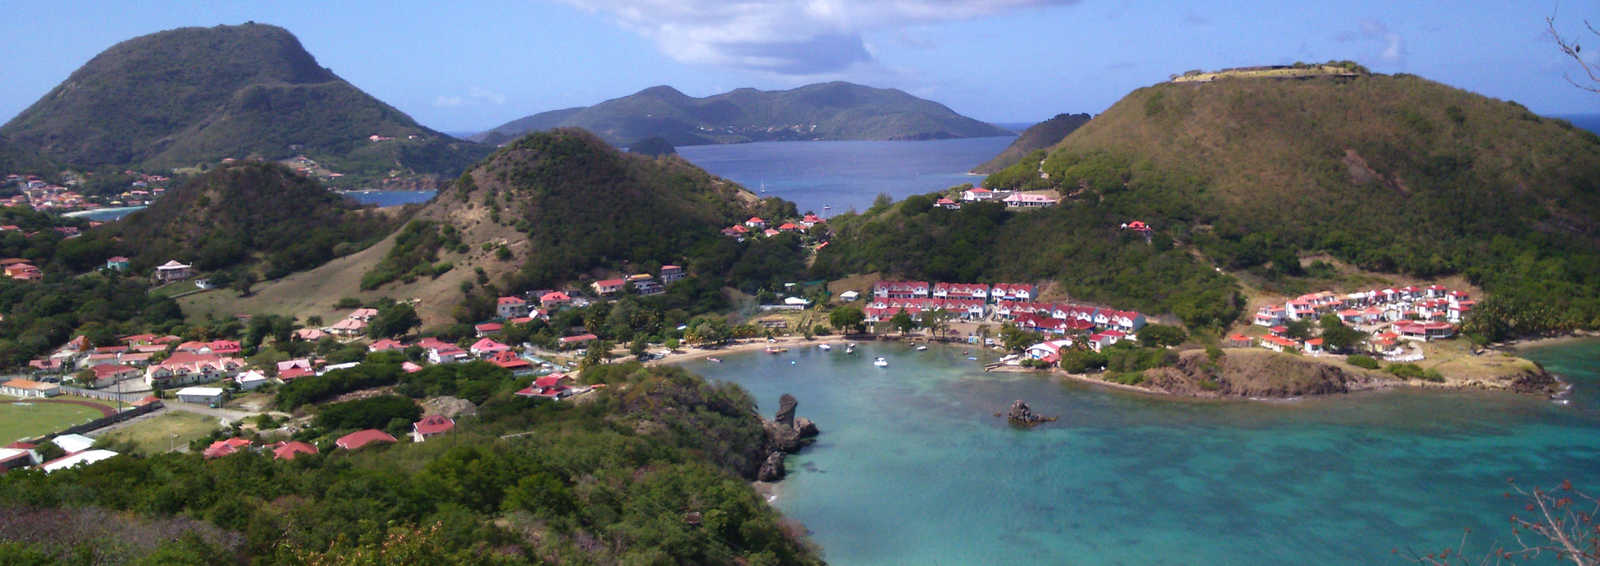 Coastal shot, Les Saintes